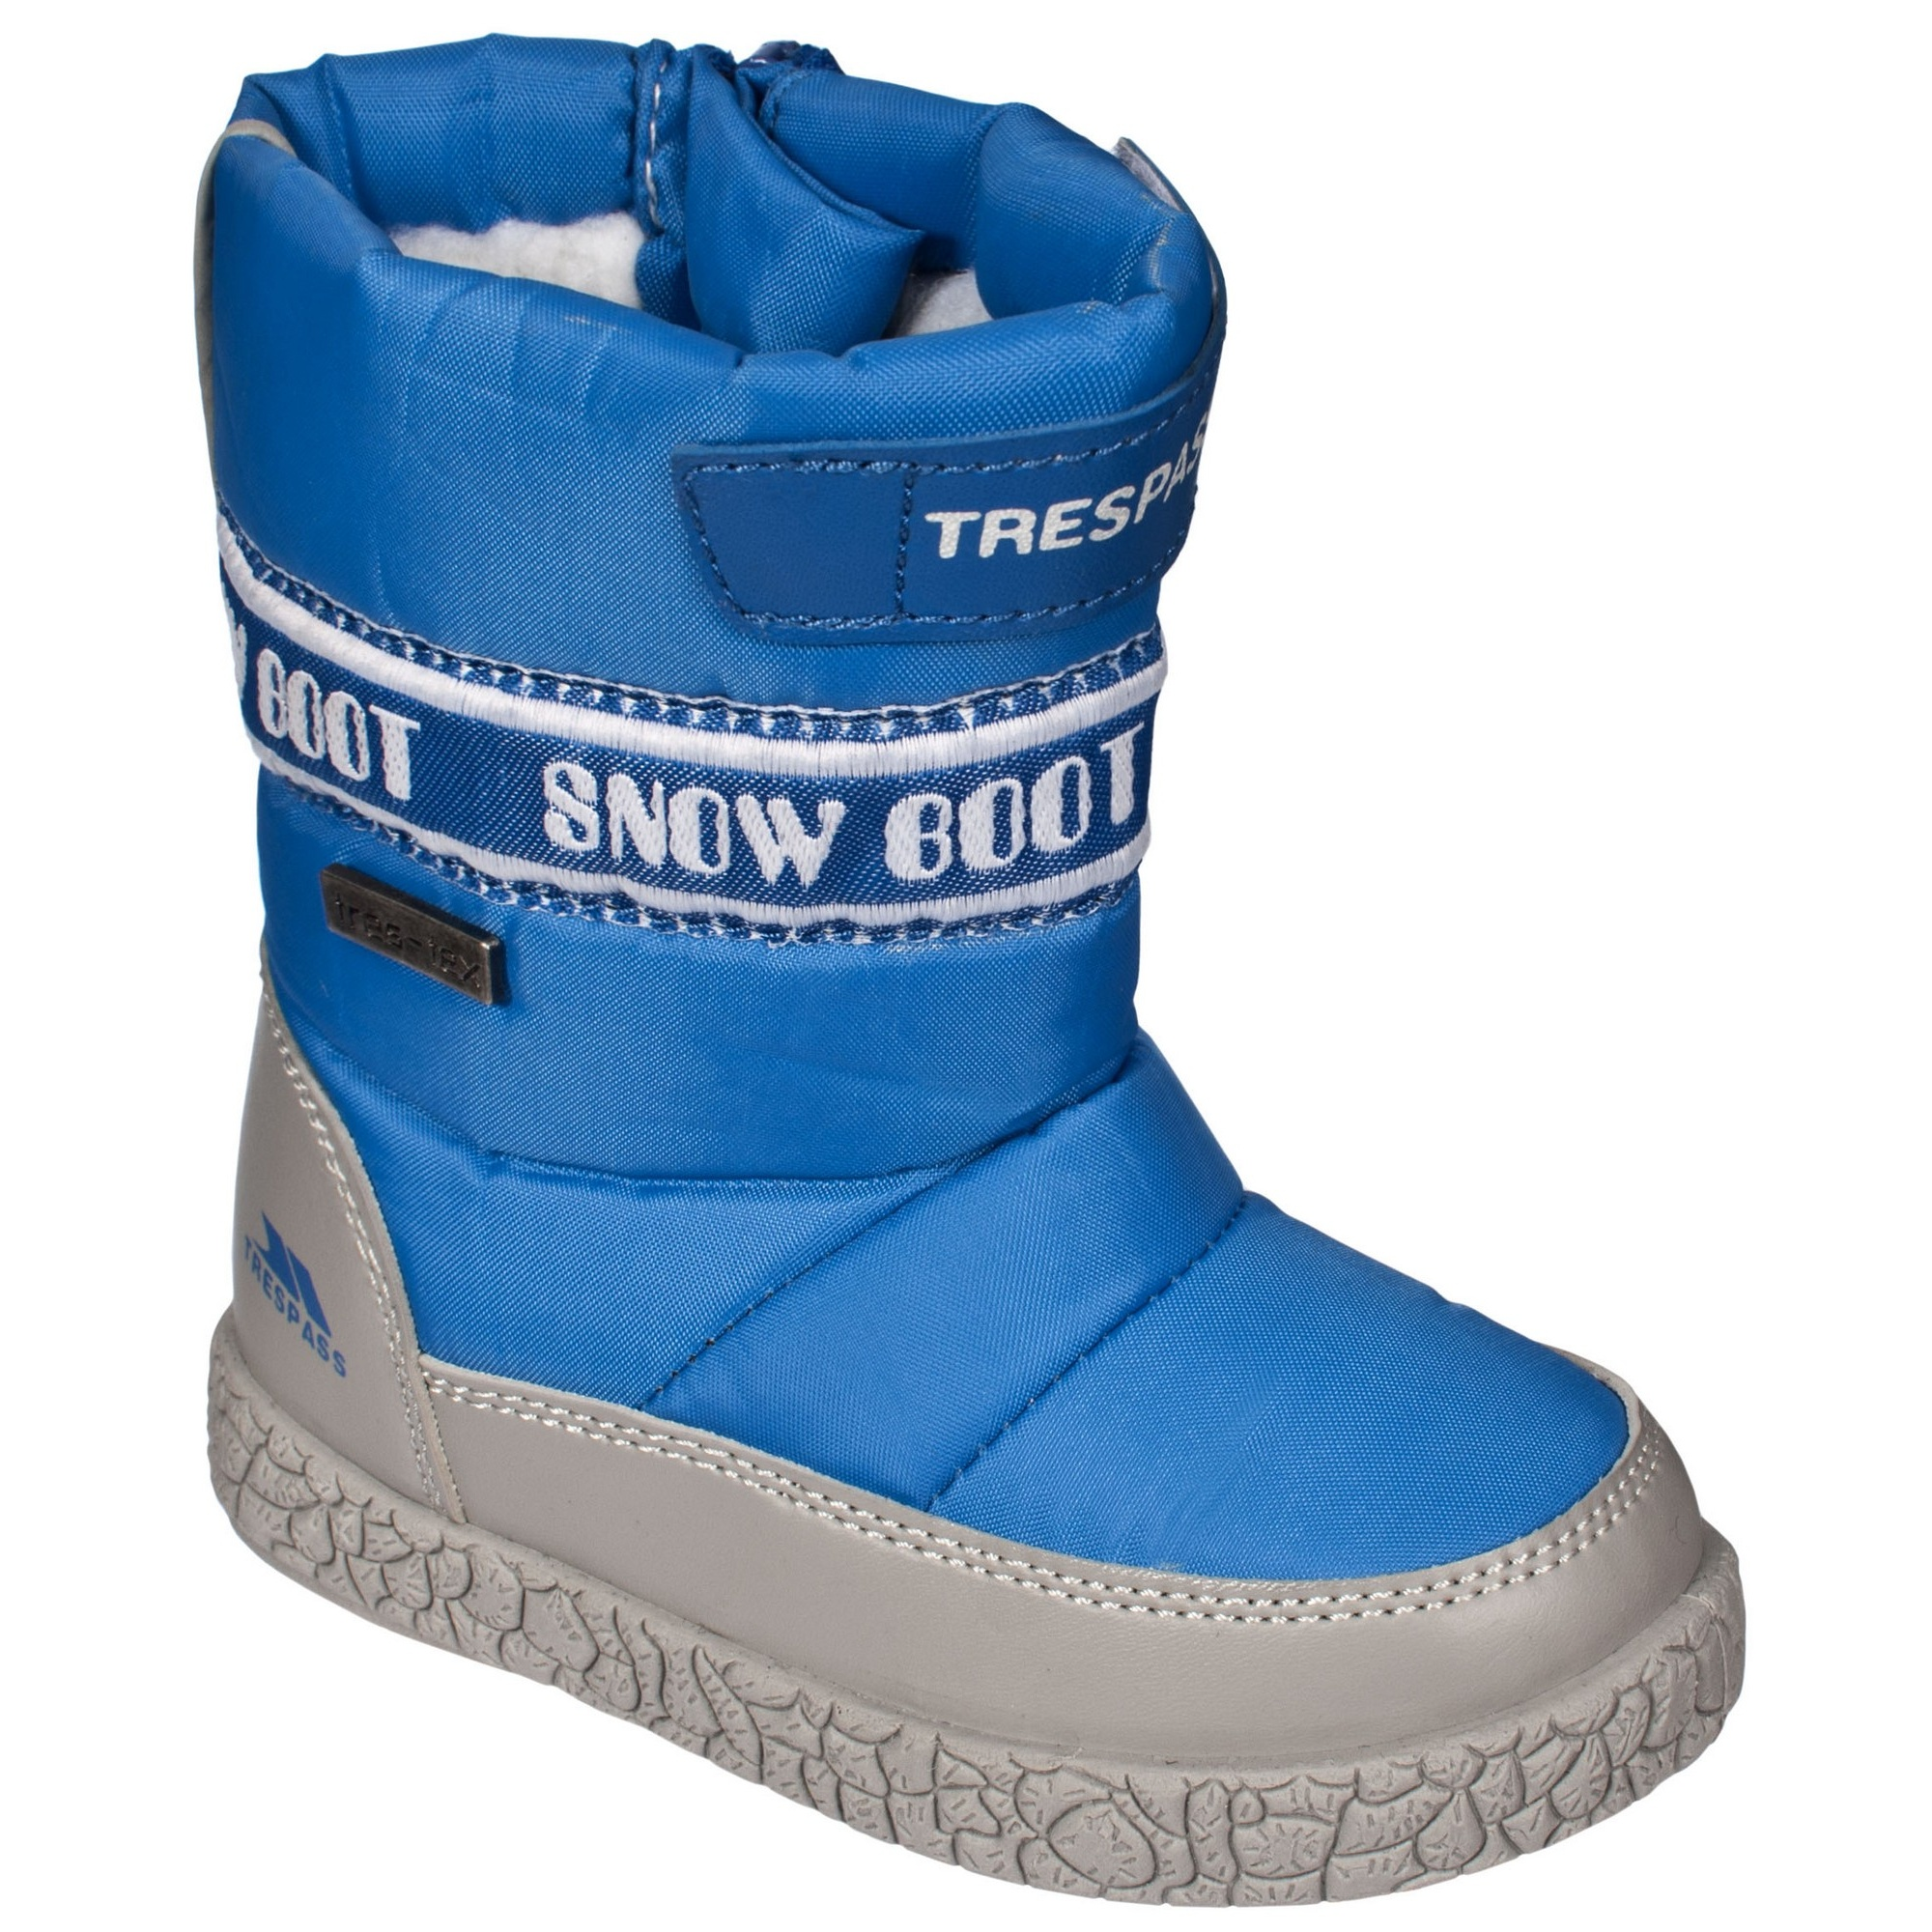 Trespass-Toddlers-Boys-Alfred-Winter-Snow-Boots-TP901